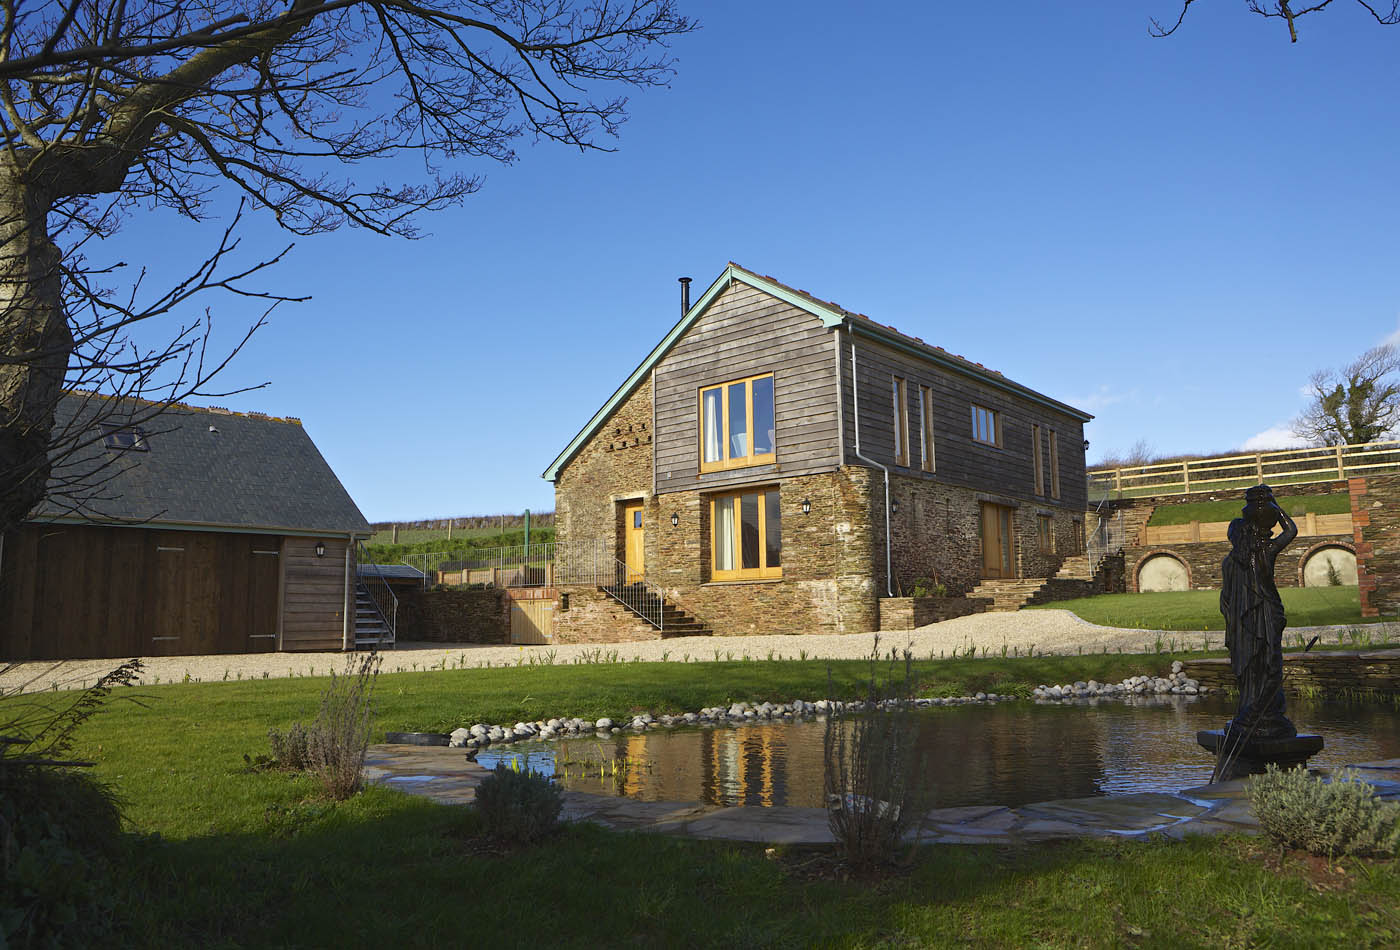 Barn conversion example - pholiday let planning permission